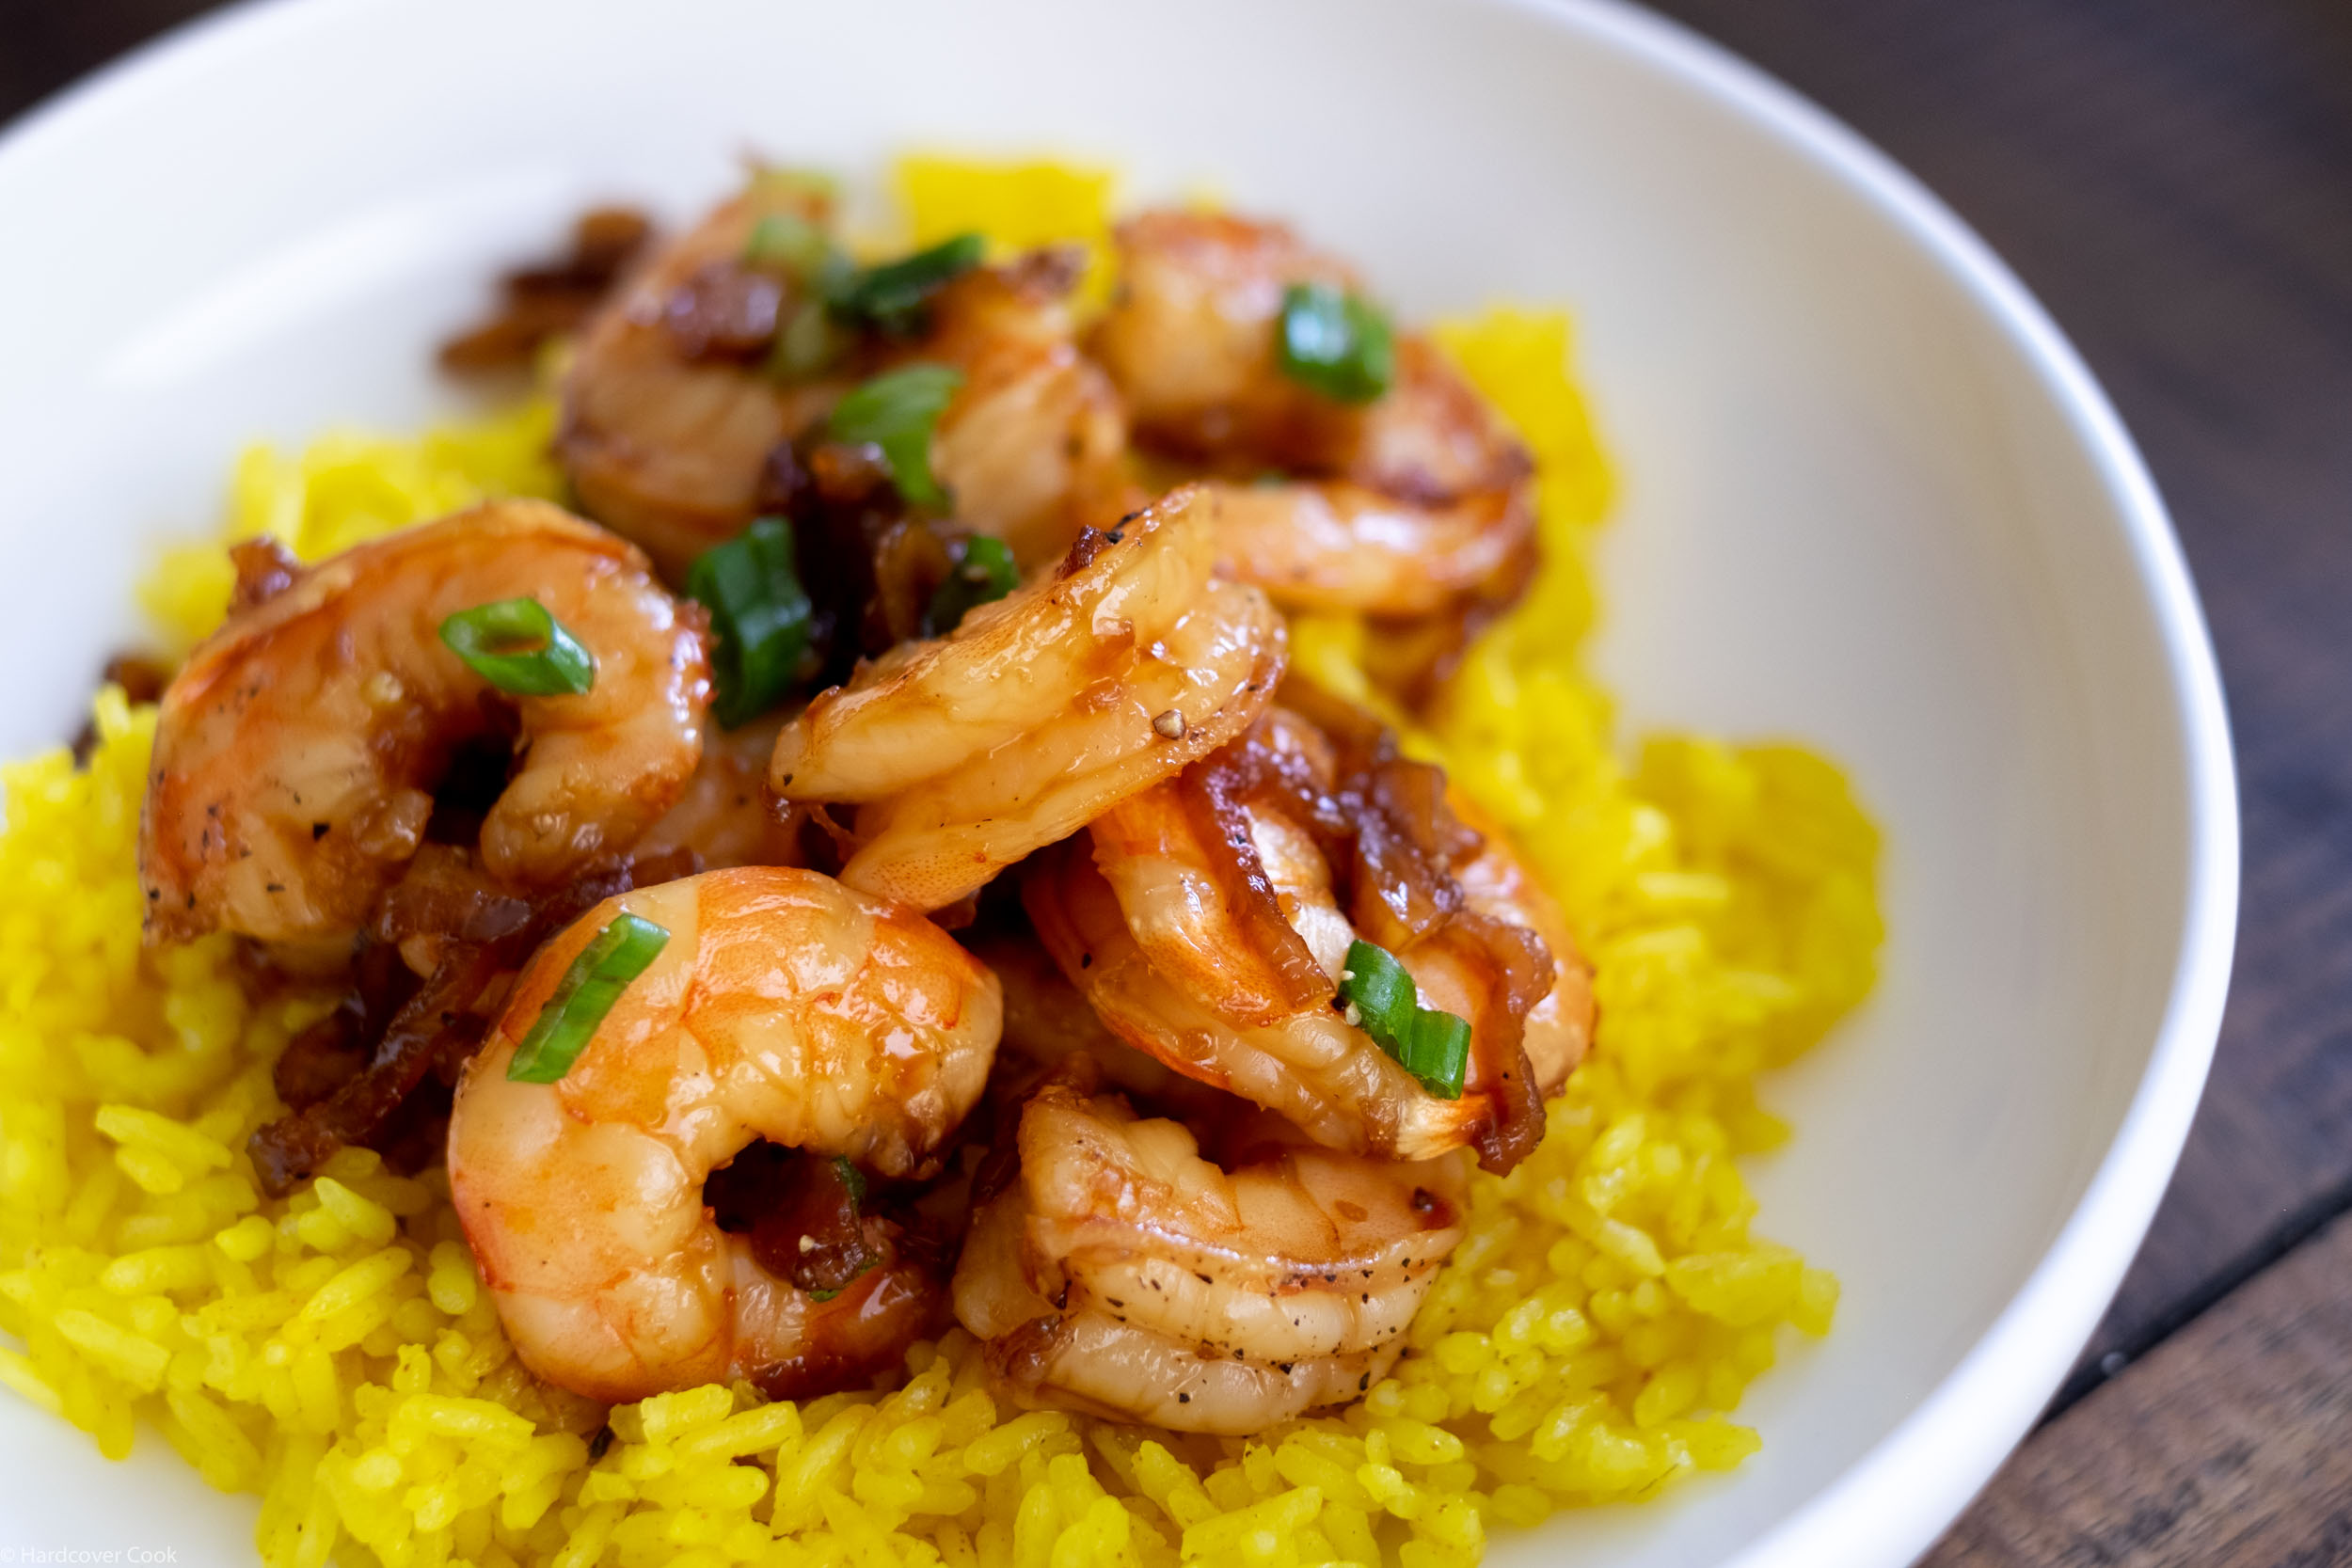 Coconut Caramel Shrimp served over the Vibrant Turmeric Rice.